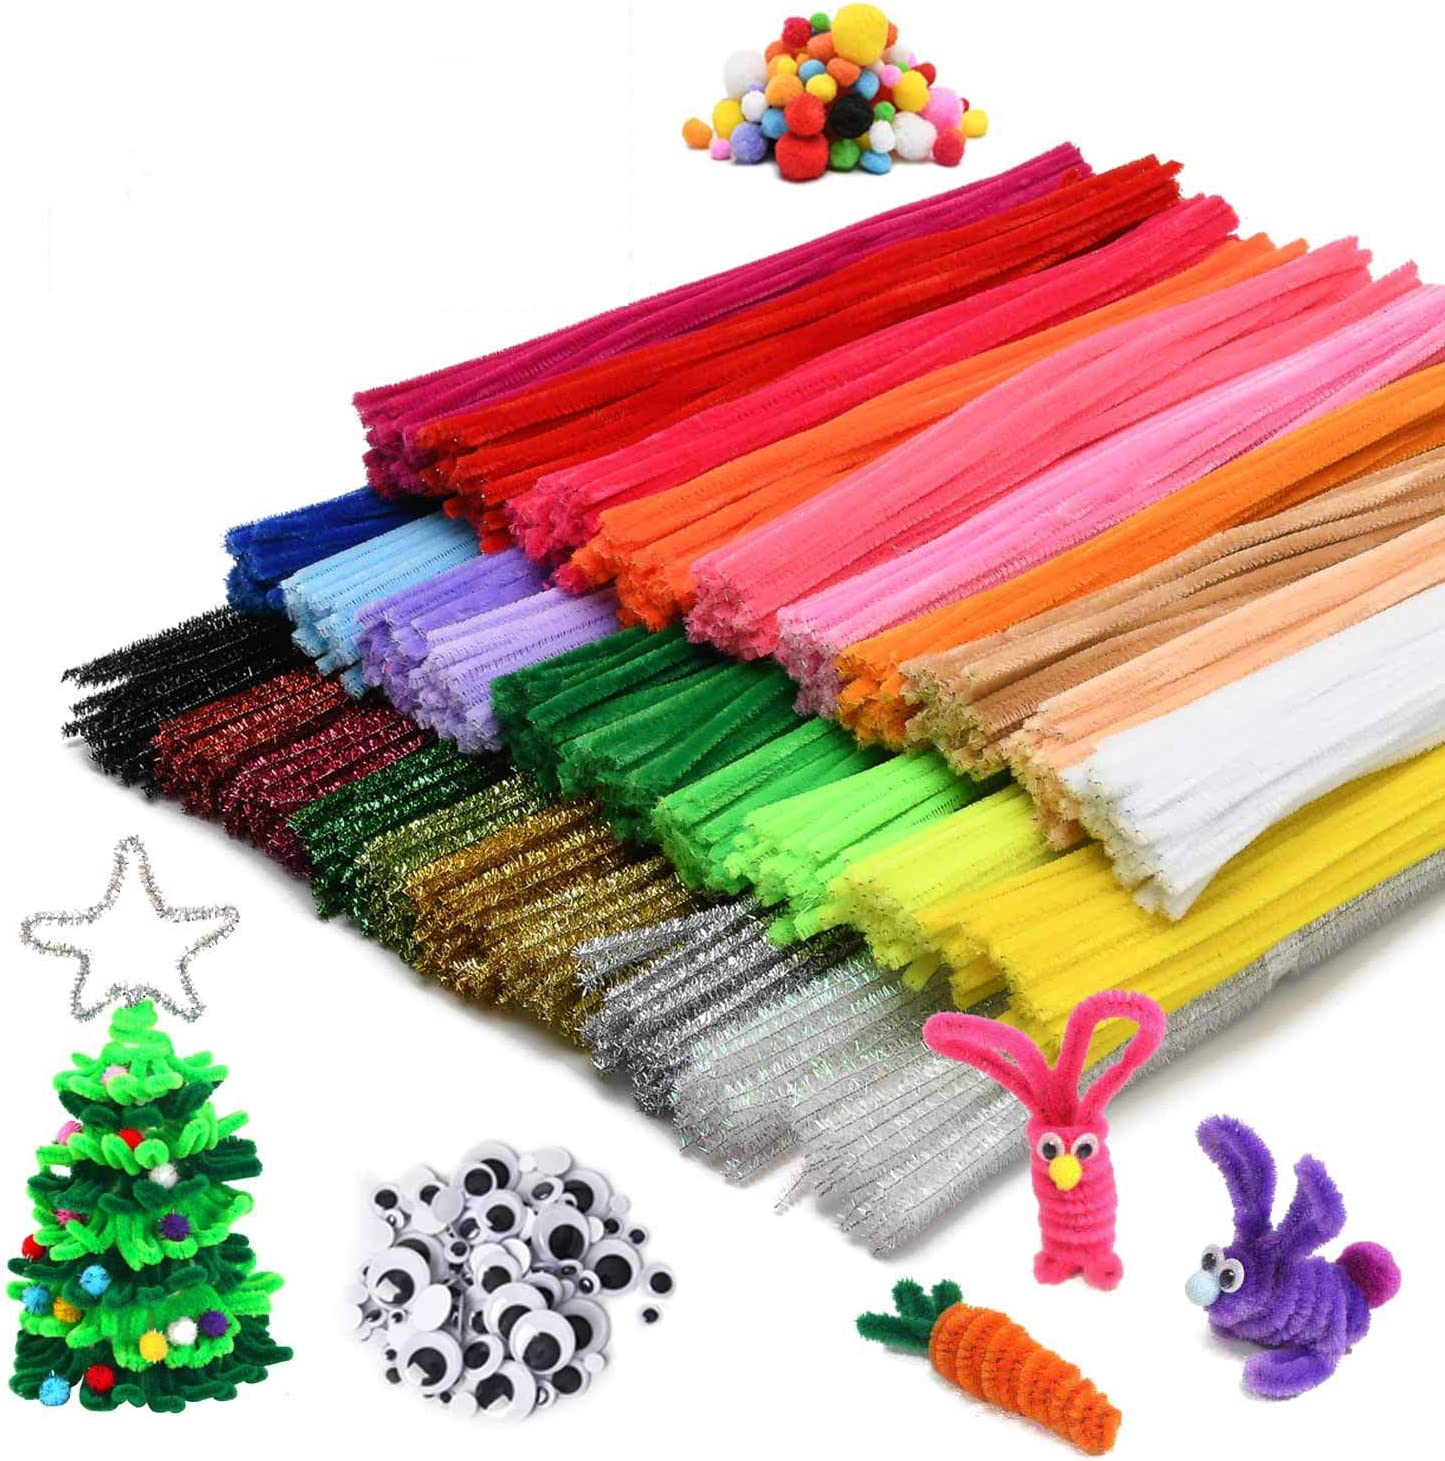 Green Red Golden 360 Pieces Chenille Stems Pipe Cleaners Christmas Glitter Craft Chenille Stems Colorful Pipe Cleaners Decoration for DIY Christmas Crafts Silver Blue 12 Inch Purple